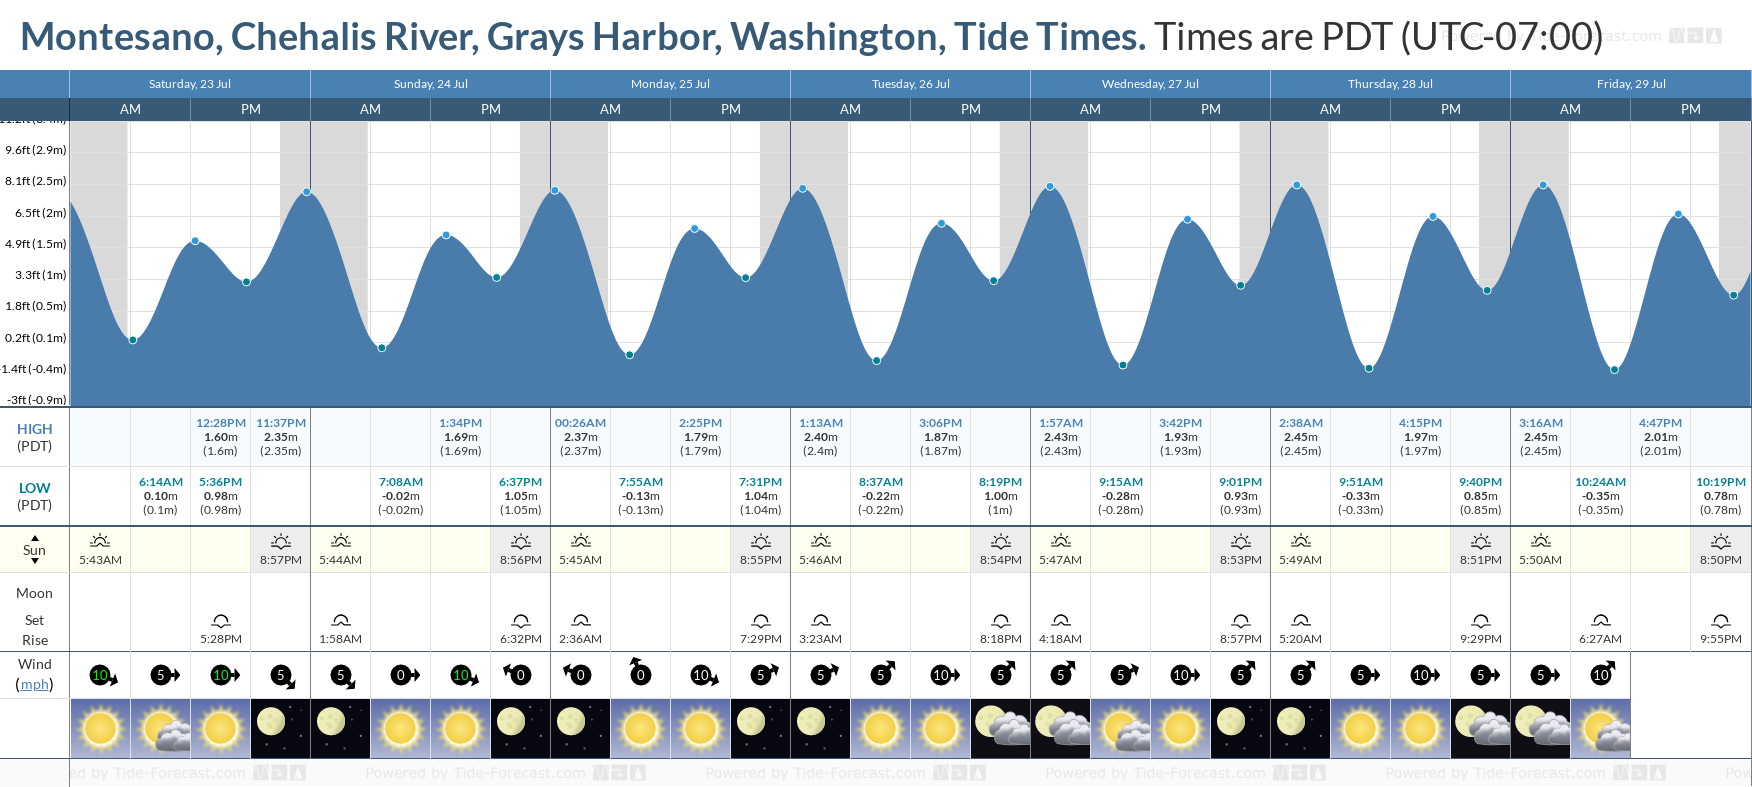 tide times and tide chart for montesano chehalis river grays harbor montesano chehalis river grays harbor